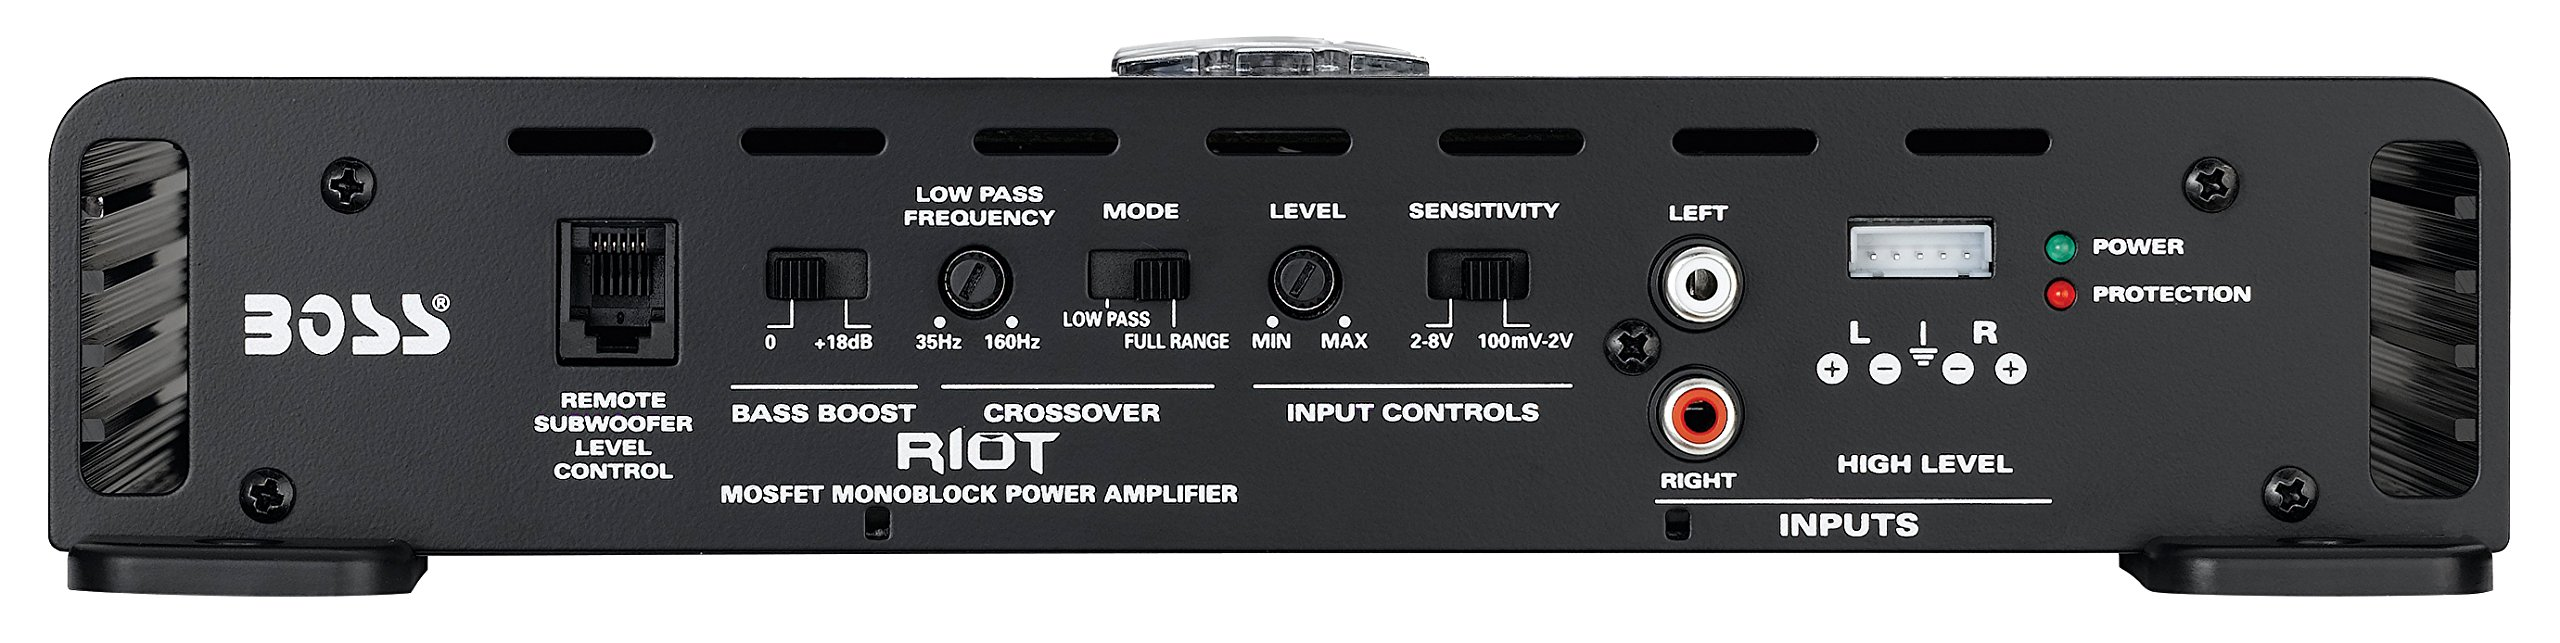 BOSS Audio Systems R1100M Monoblock Car Amplifier - 1100 Watt Amp, 2/4 Ohm Stable, Class A/B, Mosfet Power Supply, Remote Subwoofer Control, Subwoofer Amplifier